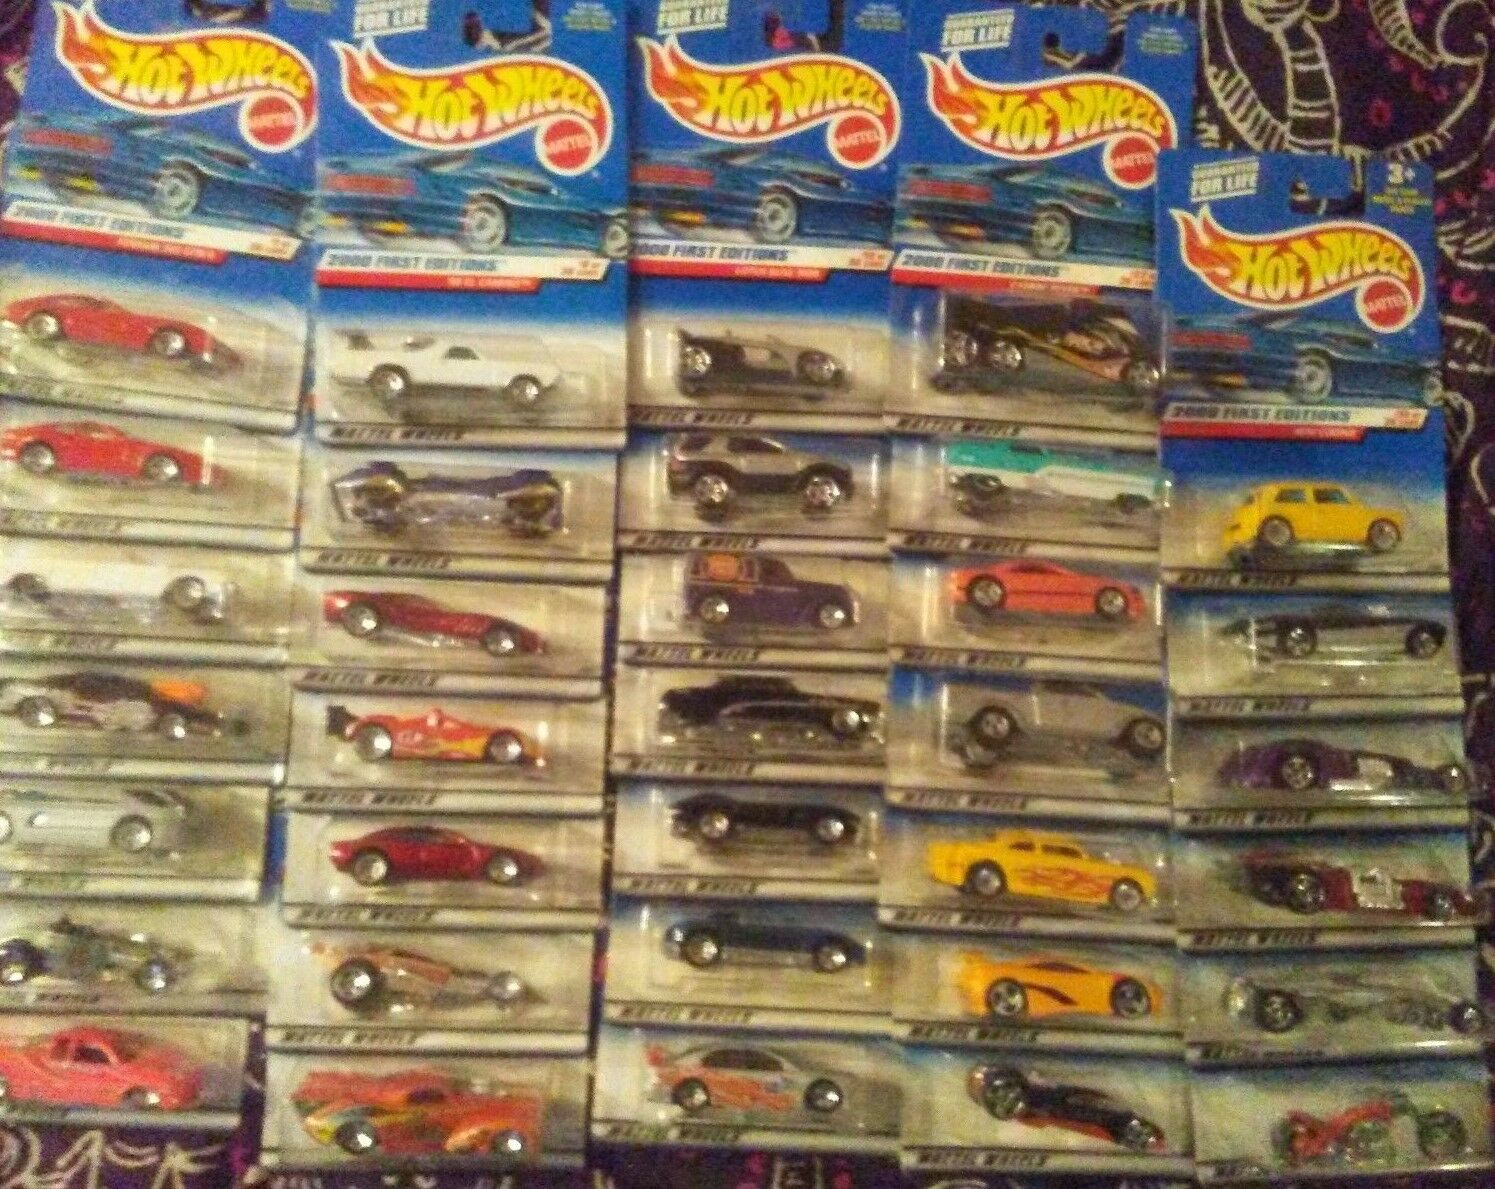 LOT LOT LOT OF 34 Hot Wheels 2000 FIRST EDITIONS  Series Almost Complete No duplicates f0cd8a